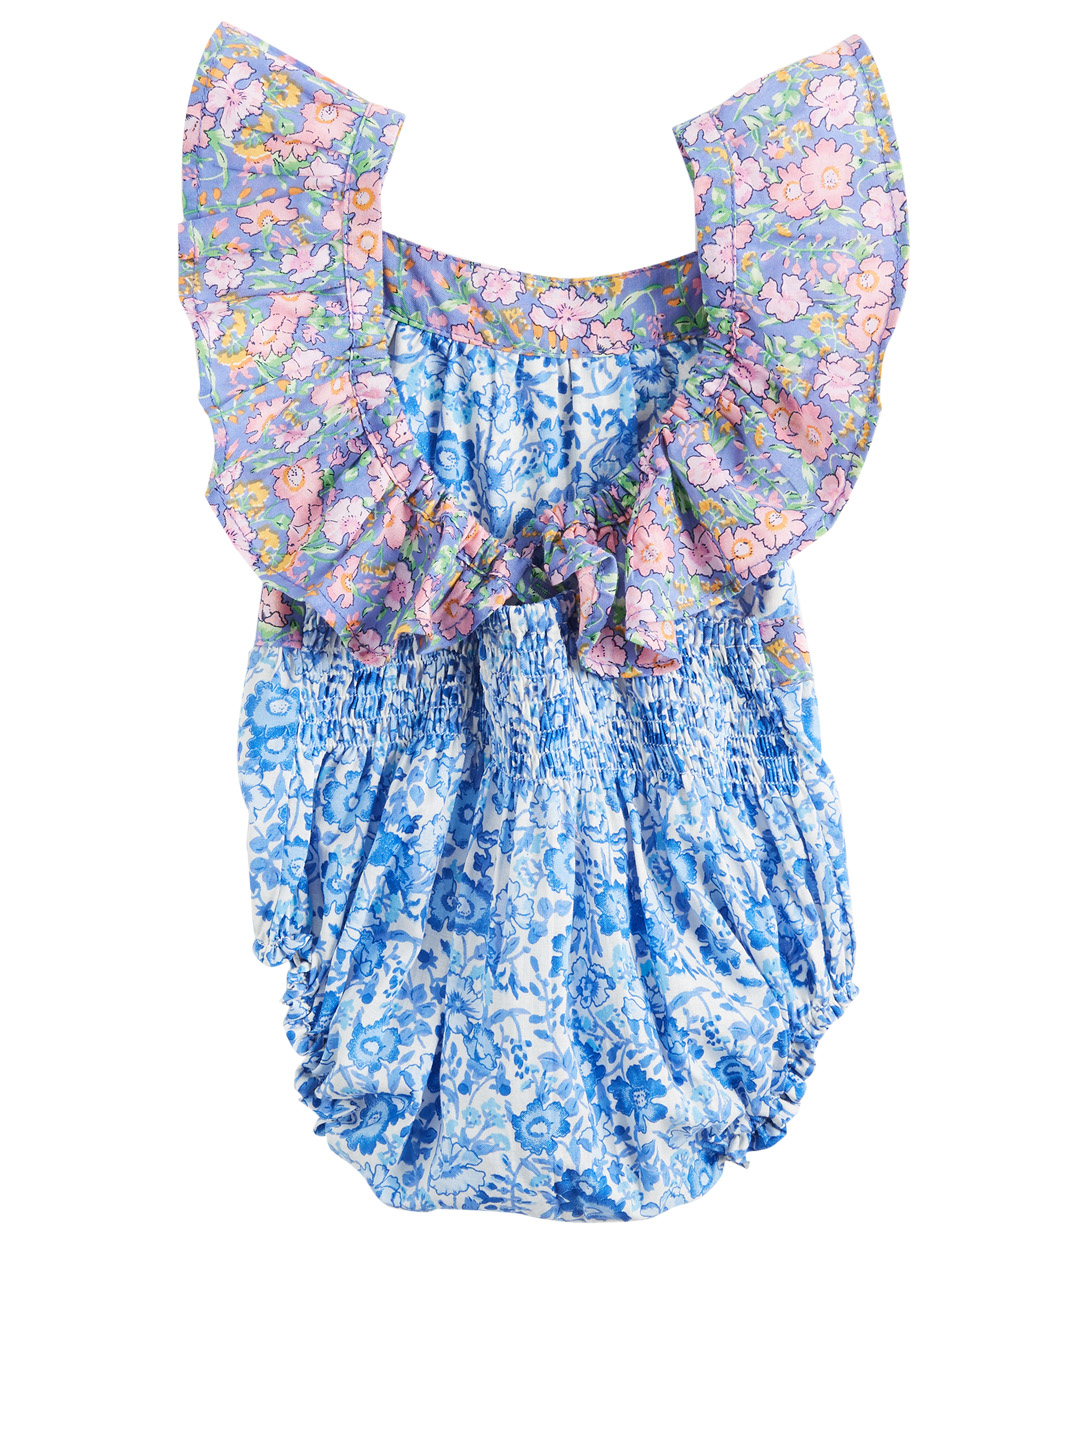 COCO & GINGER Camille Baby Sunsuit Romper In Indian Flower Print H Project Multi